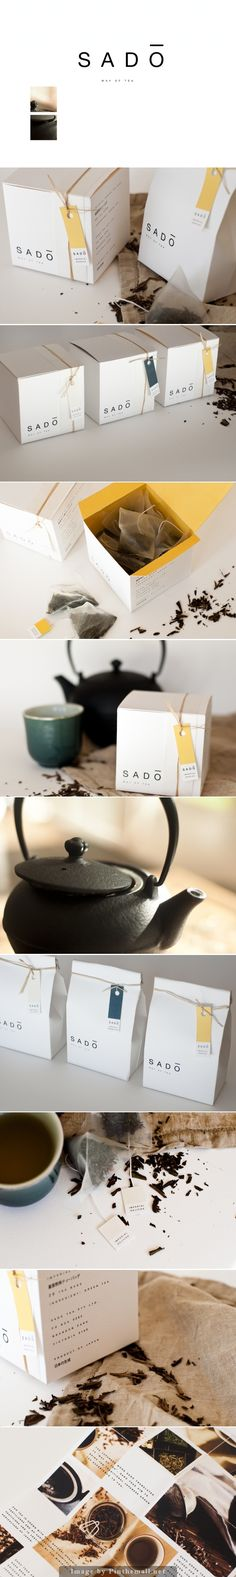 Got time time for some Sato Tea #packaging and design inspiration by Emma Goddard curated by Packaging Diva PD created via http://www.theloop.com.au/emma.goddard91/portfolio/sado-tea/180826